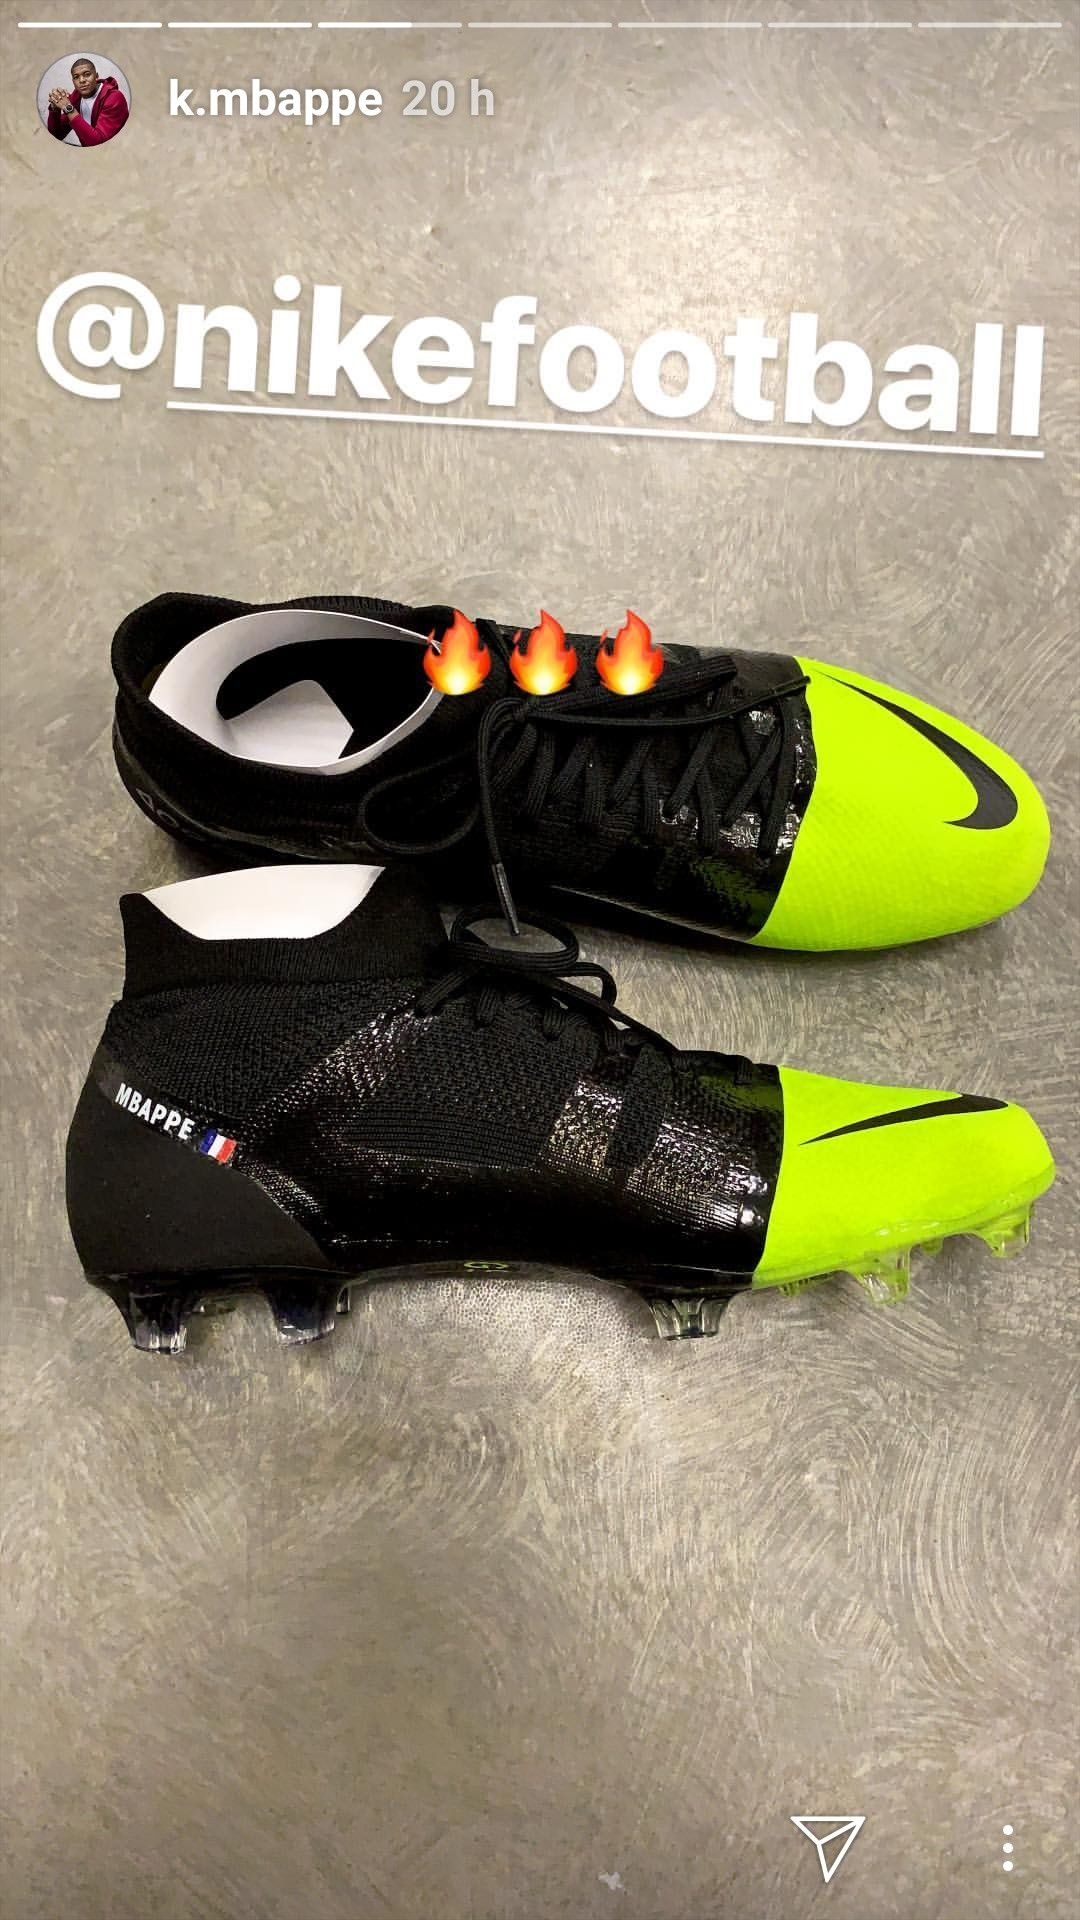 c7771639f New boot of mbappe Soccer Boots, Soccer Gear, Football Shoes, Nike Soccer,